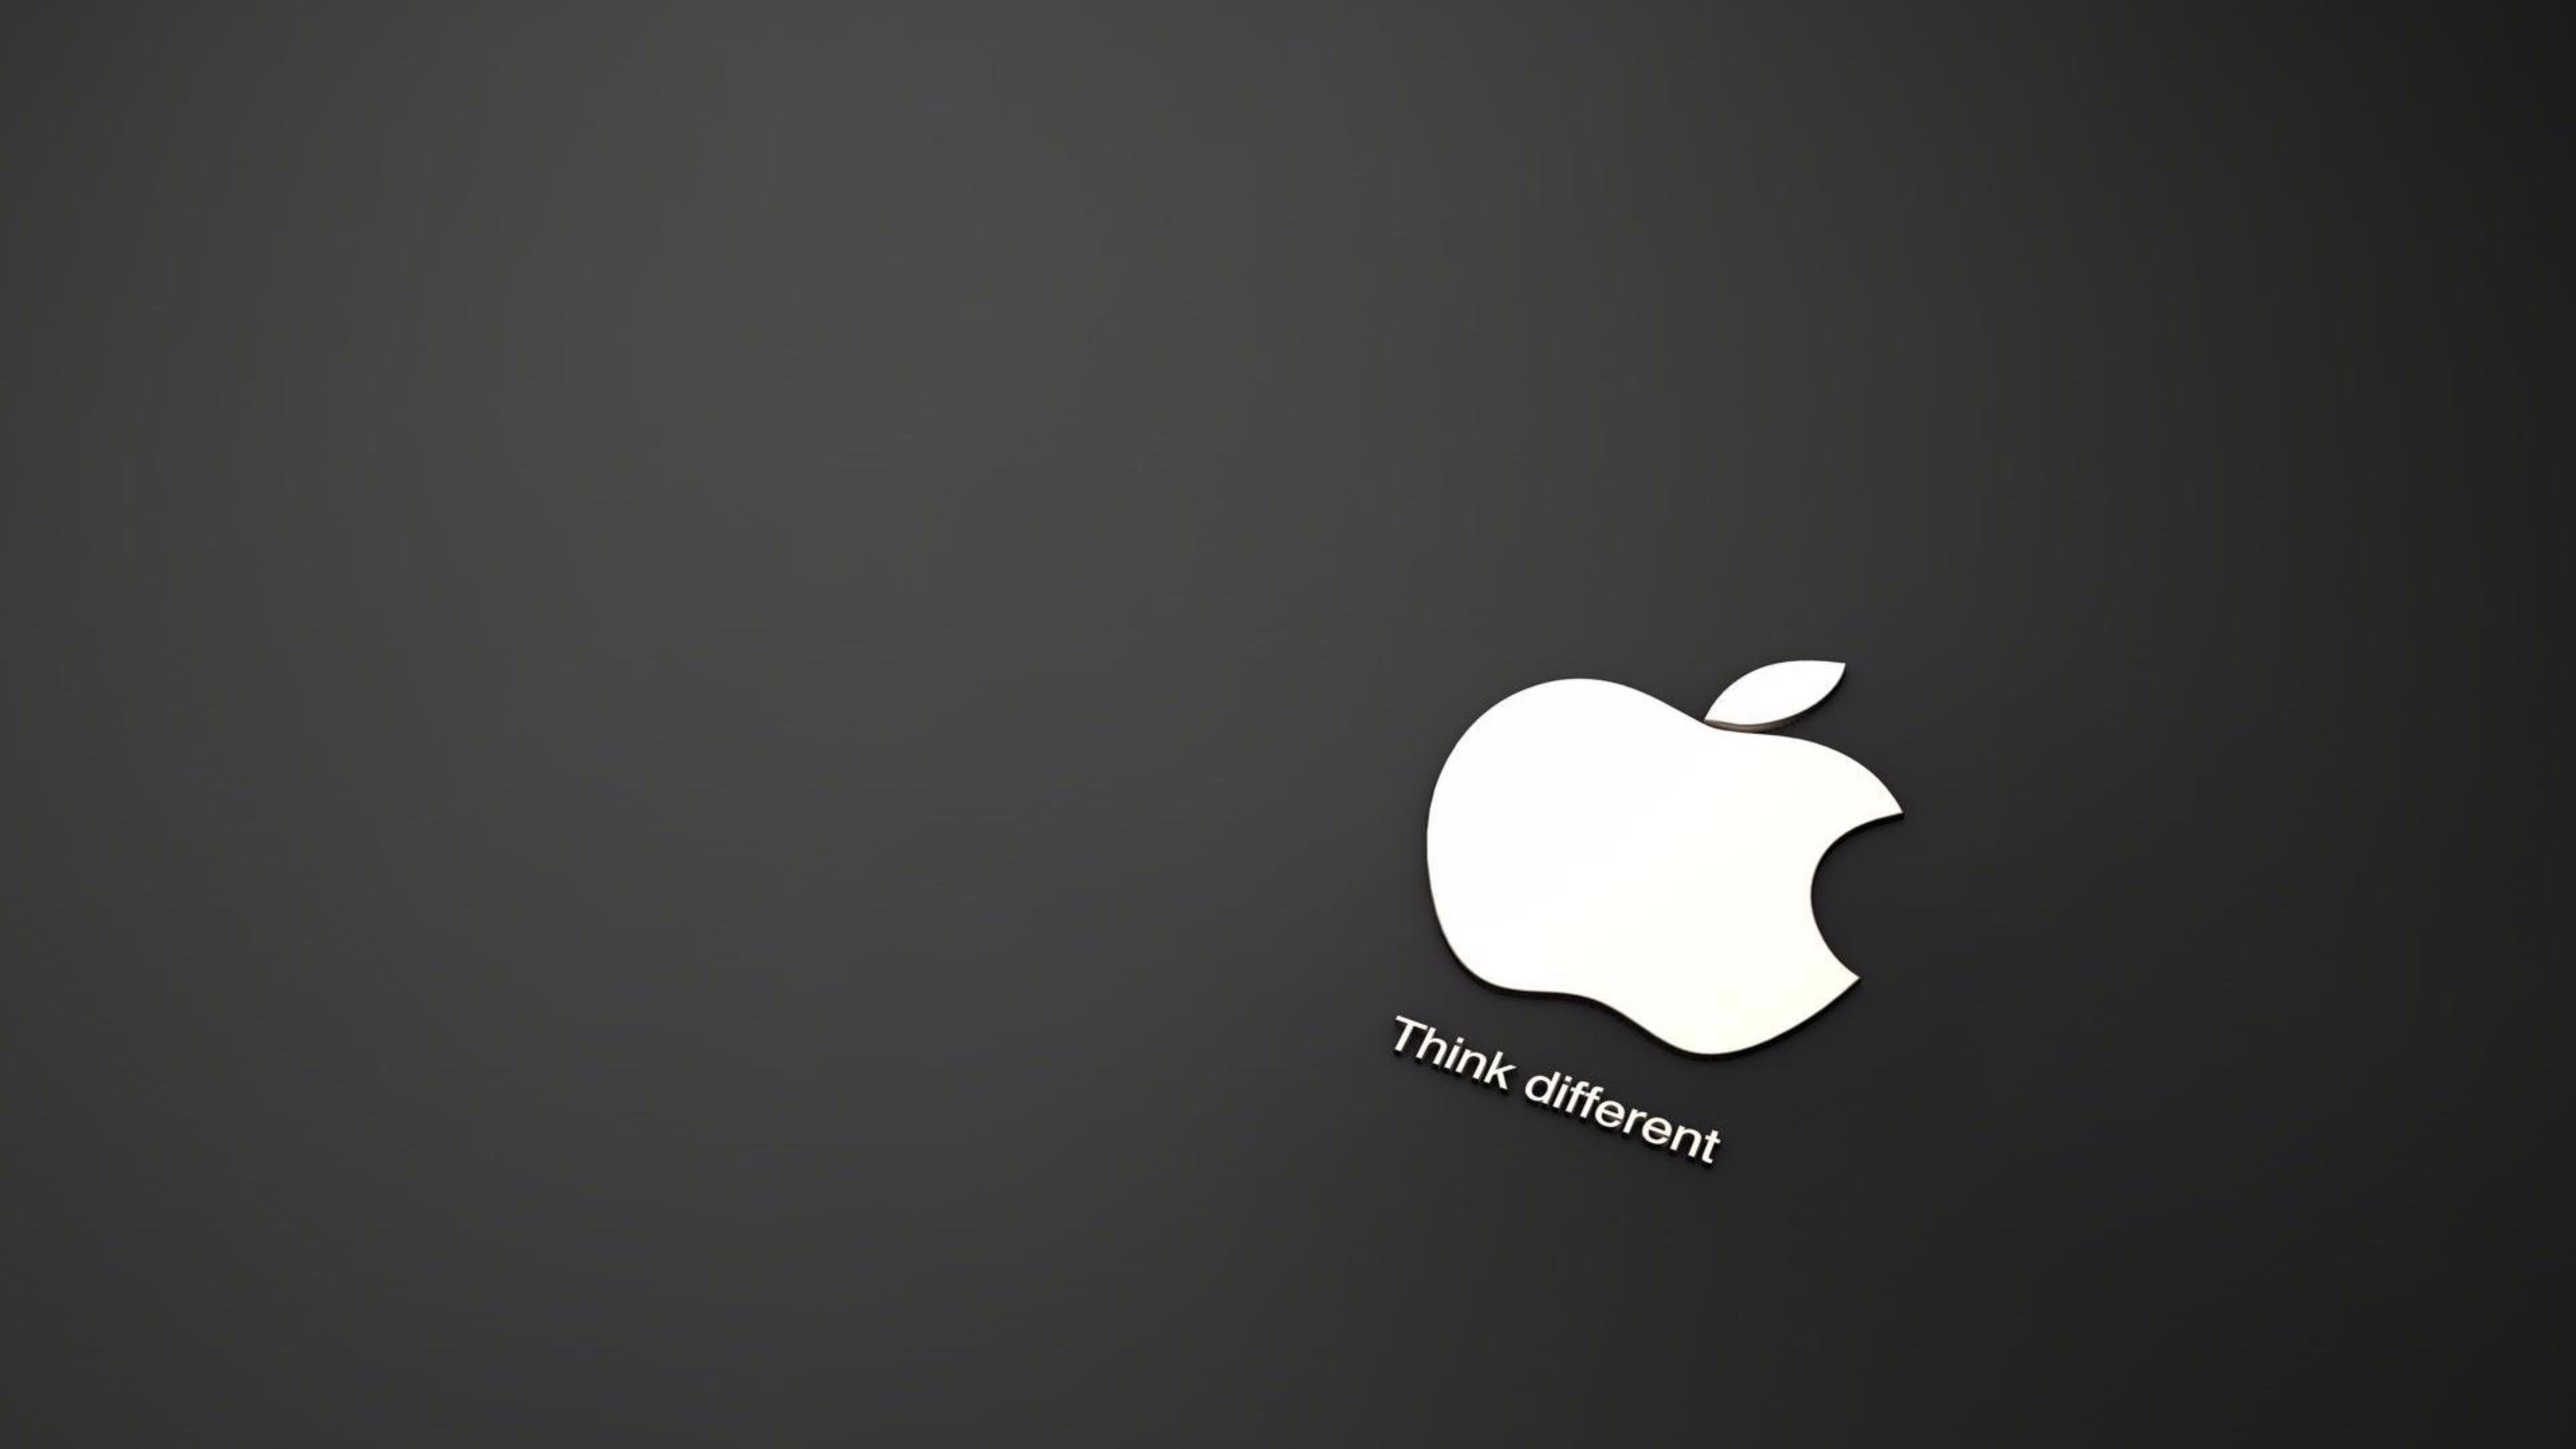 wallpapers apple 4k logo images